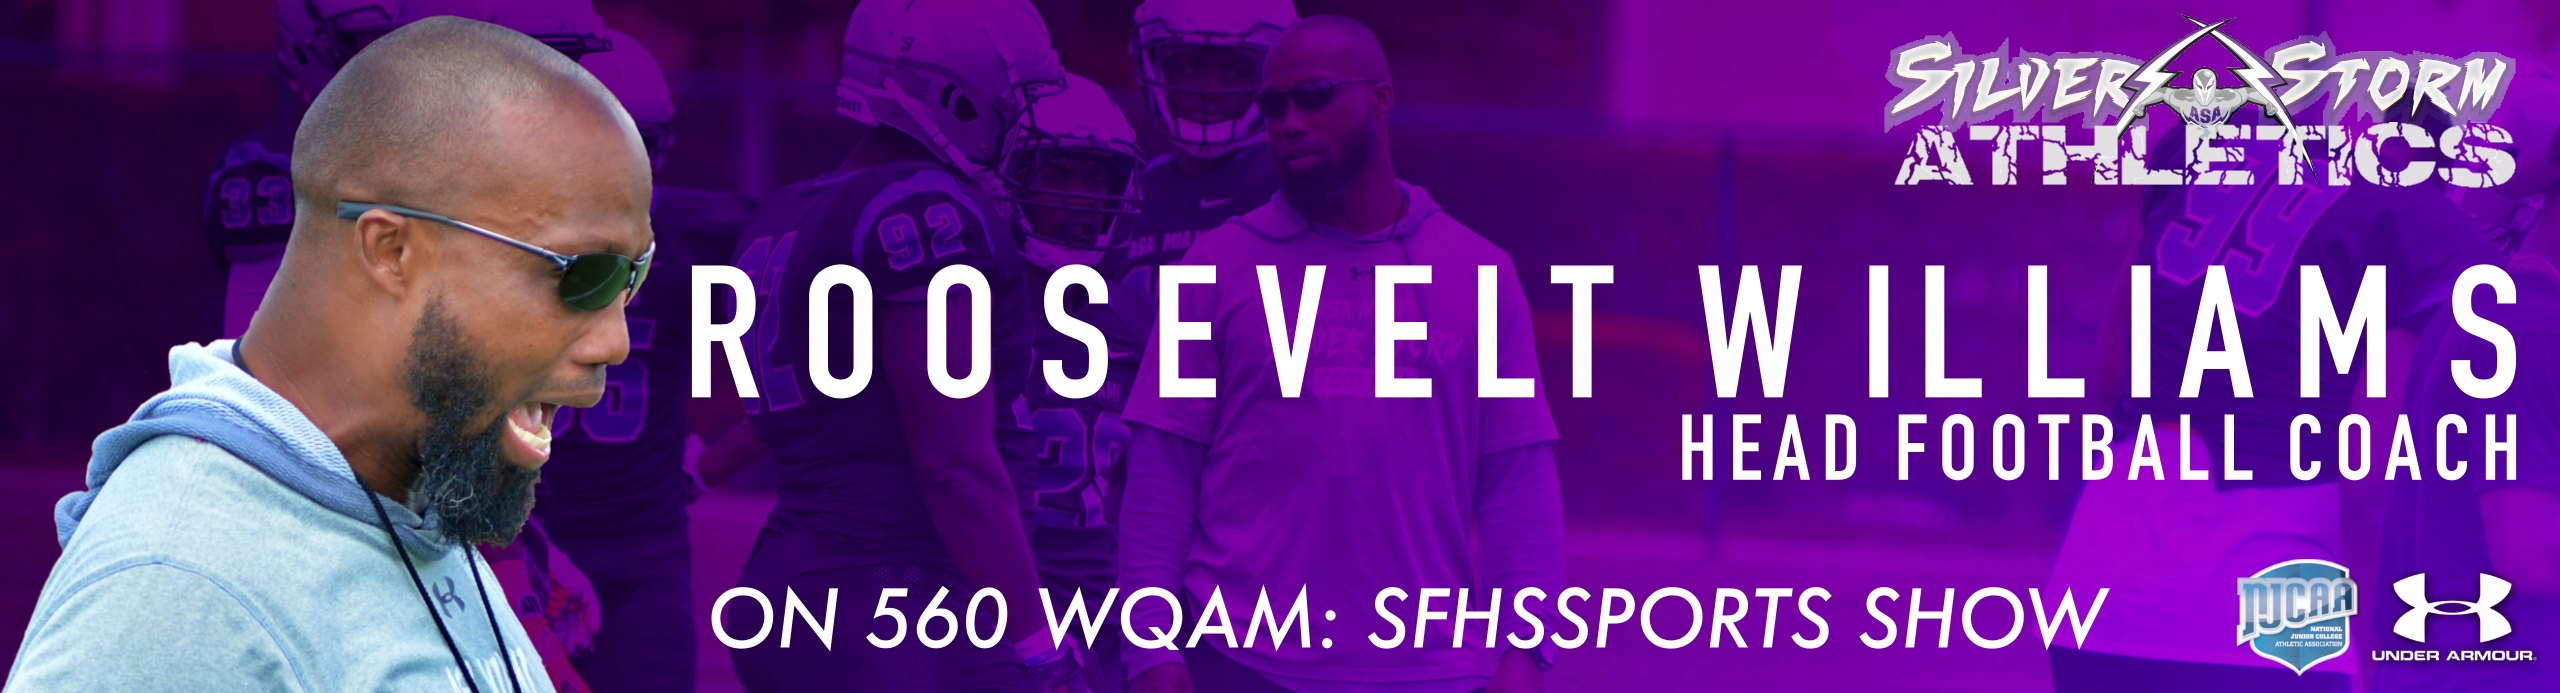 Roosevelt Williams Joins Larry Blustein Radio Show On 560 WQAM